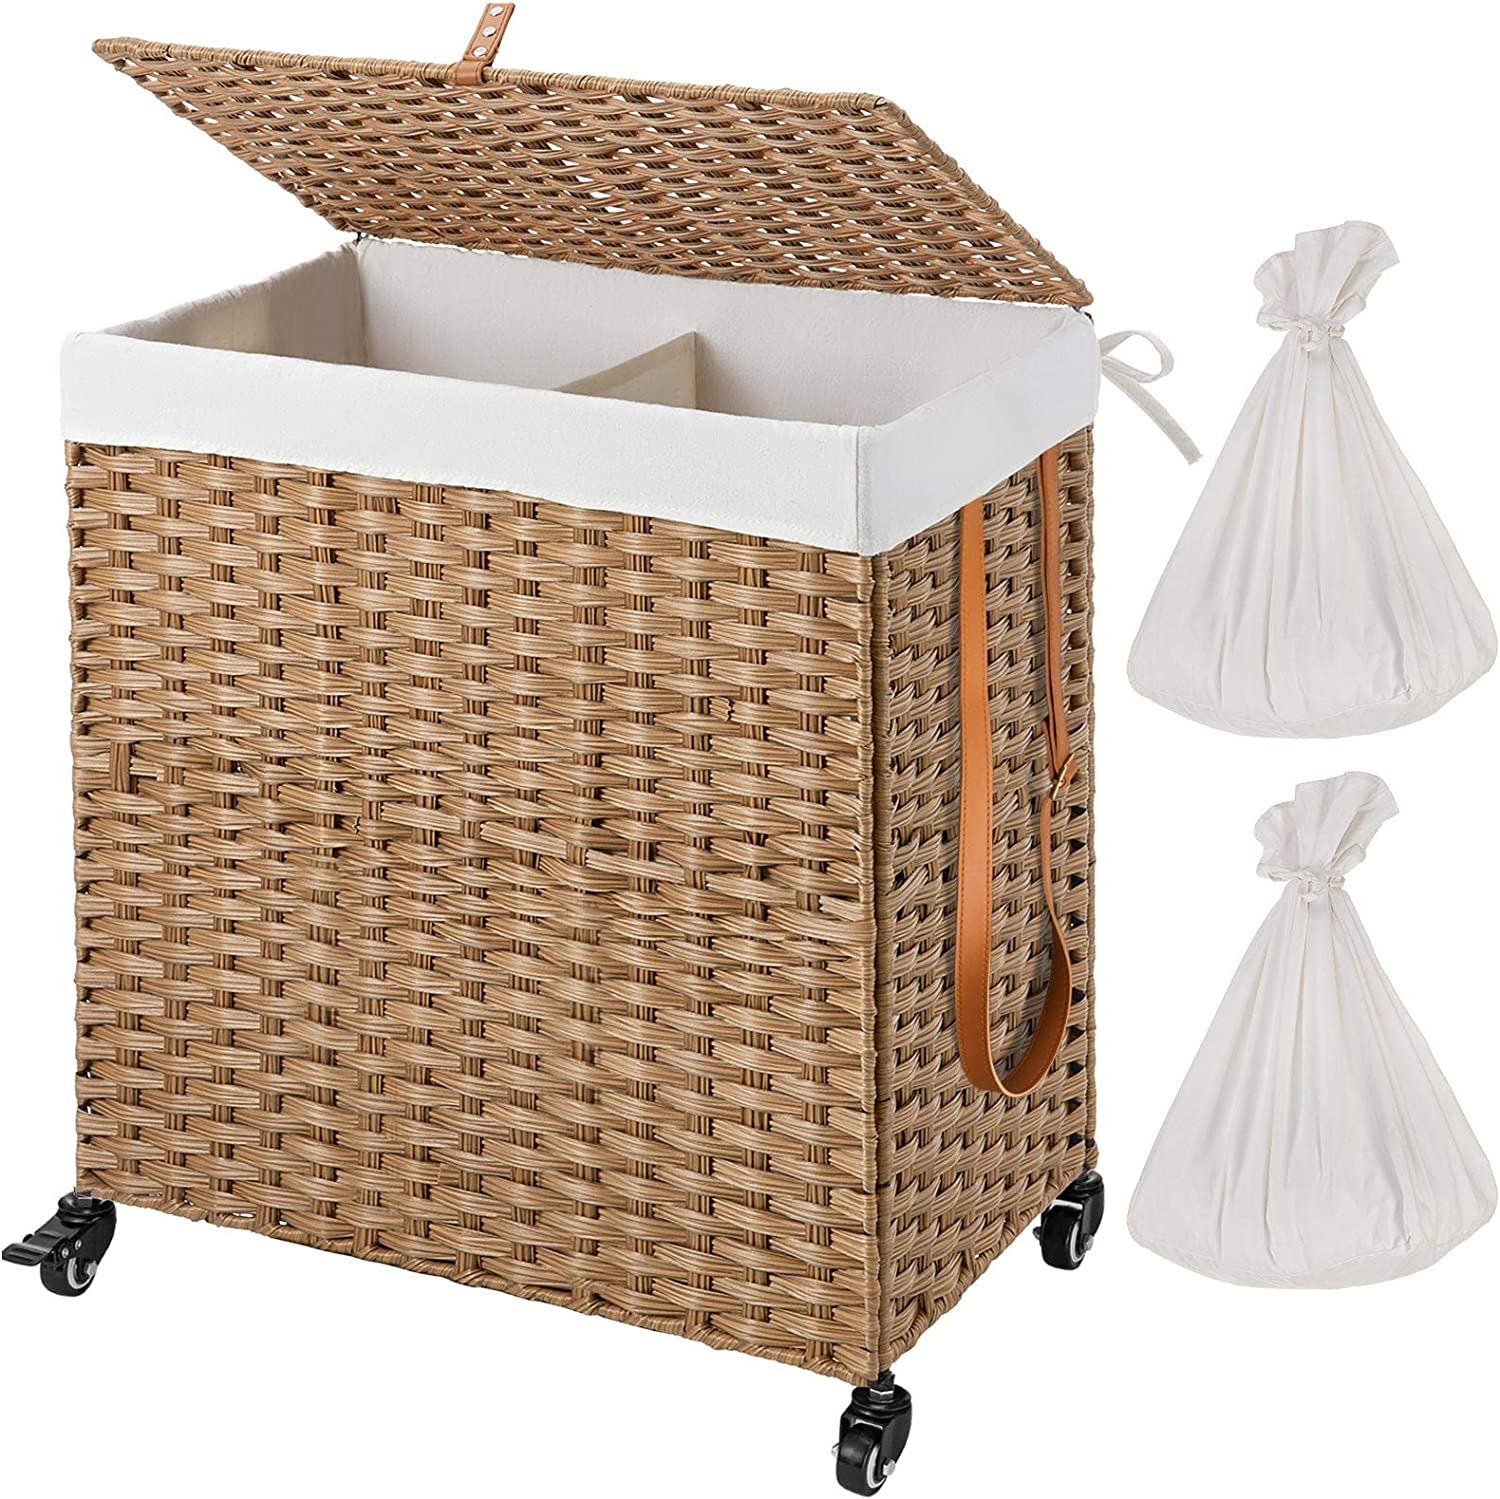 Greenstell Handwoven Divided Laundry Hamper with Wheels and 2 Removable Liner Bags, Synthetic Rattan Clothes Laundry Basket with Lid and Handles, Foldable and Easy to Install (Natural)